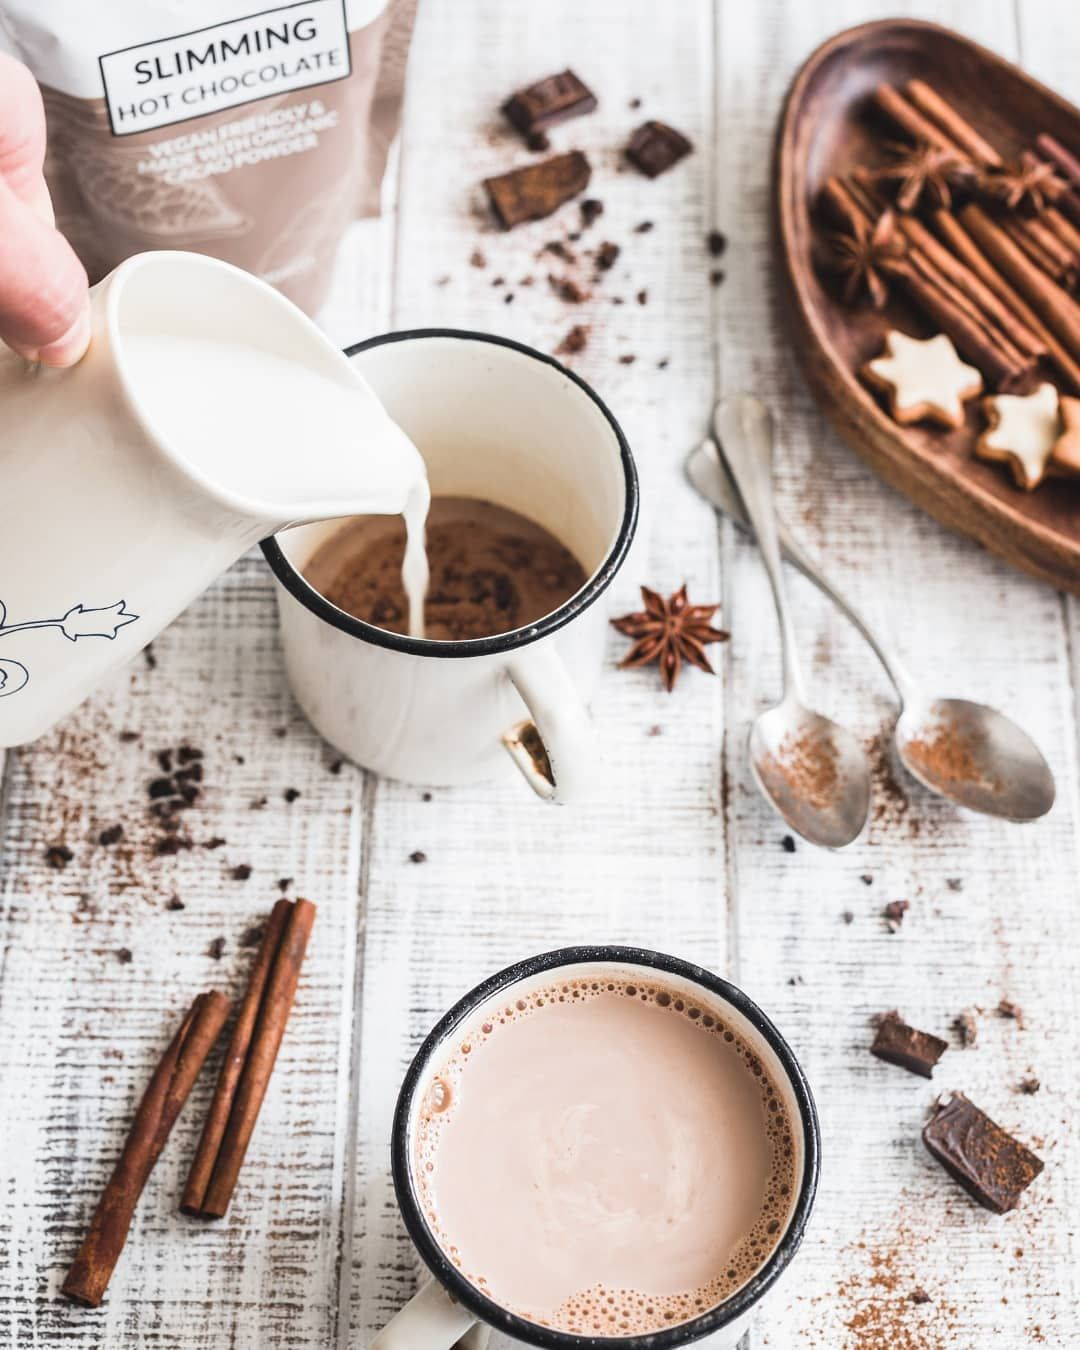 Slimming Hot Chocolate (With images) Hot chocolate, Food